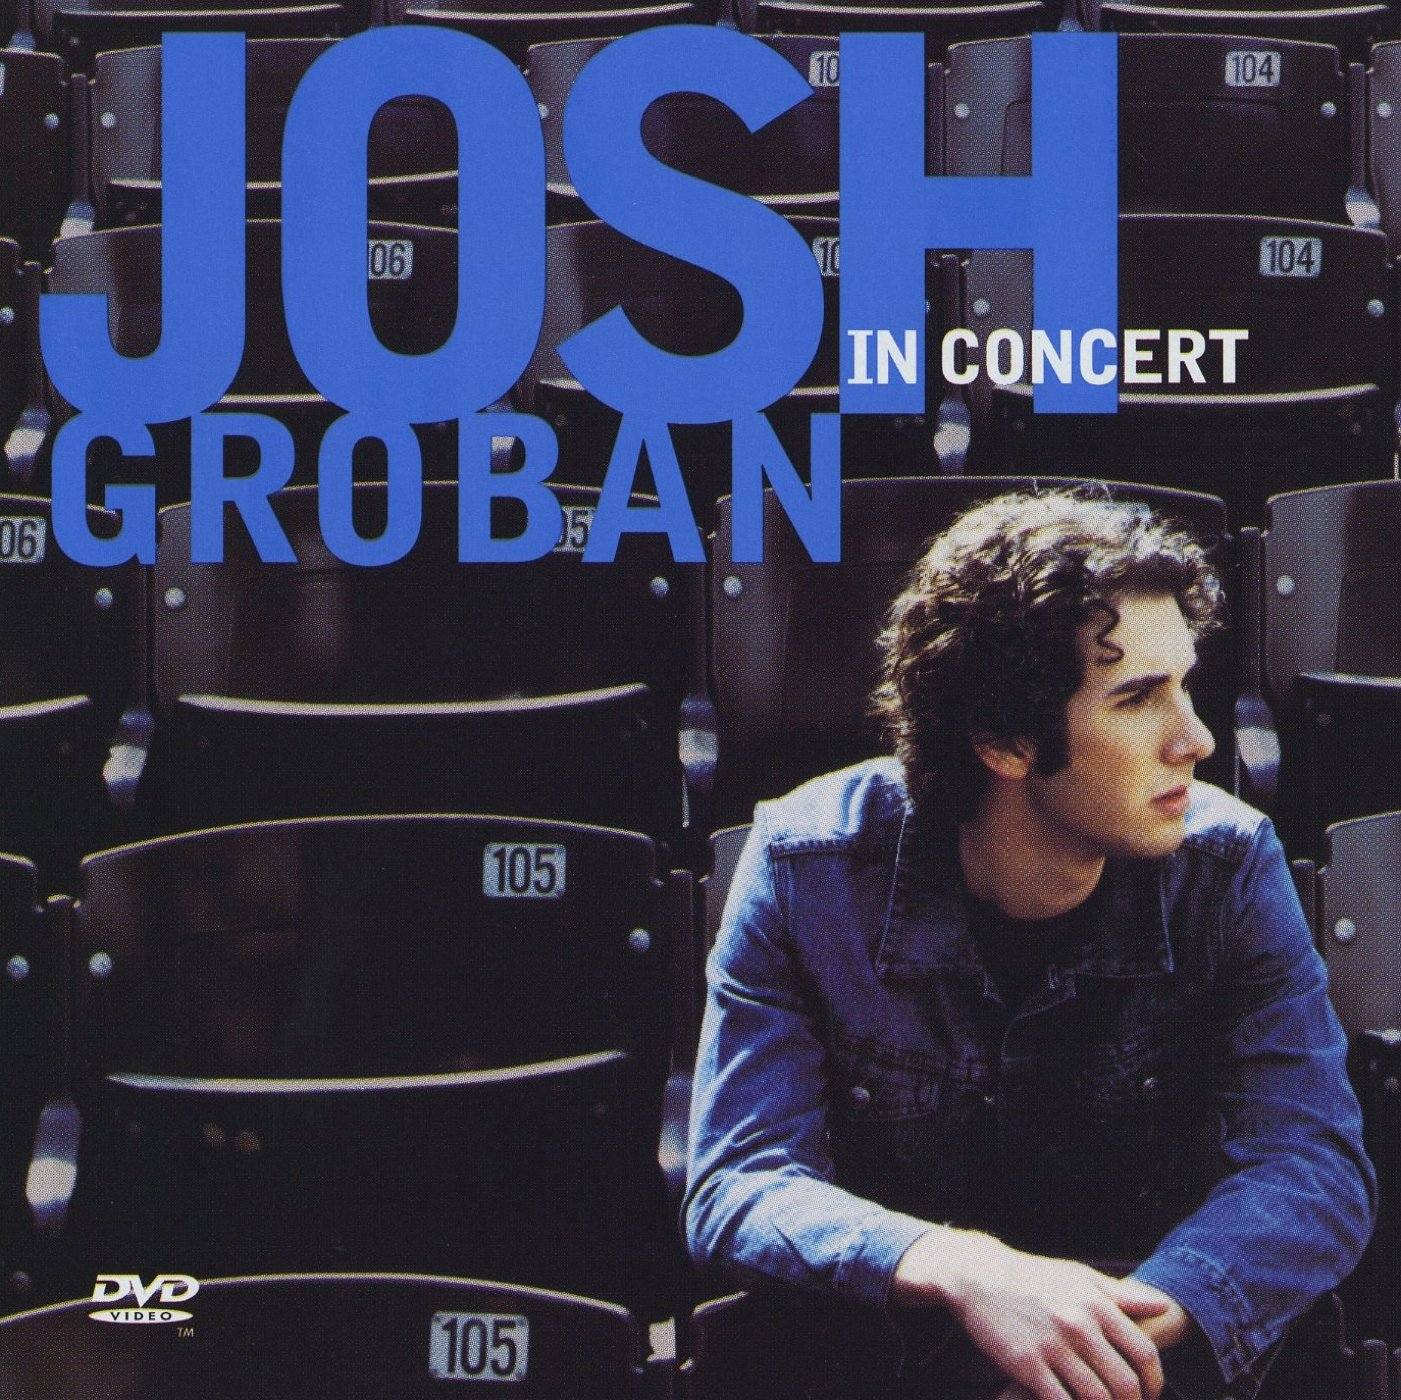 Josh Groban - Josh Groban in Concert - Amazon.com Music